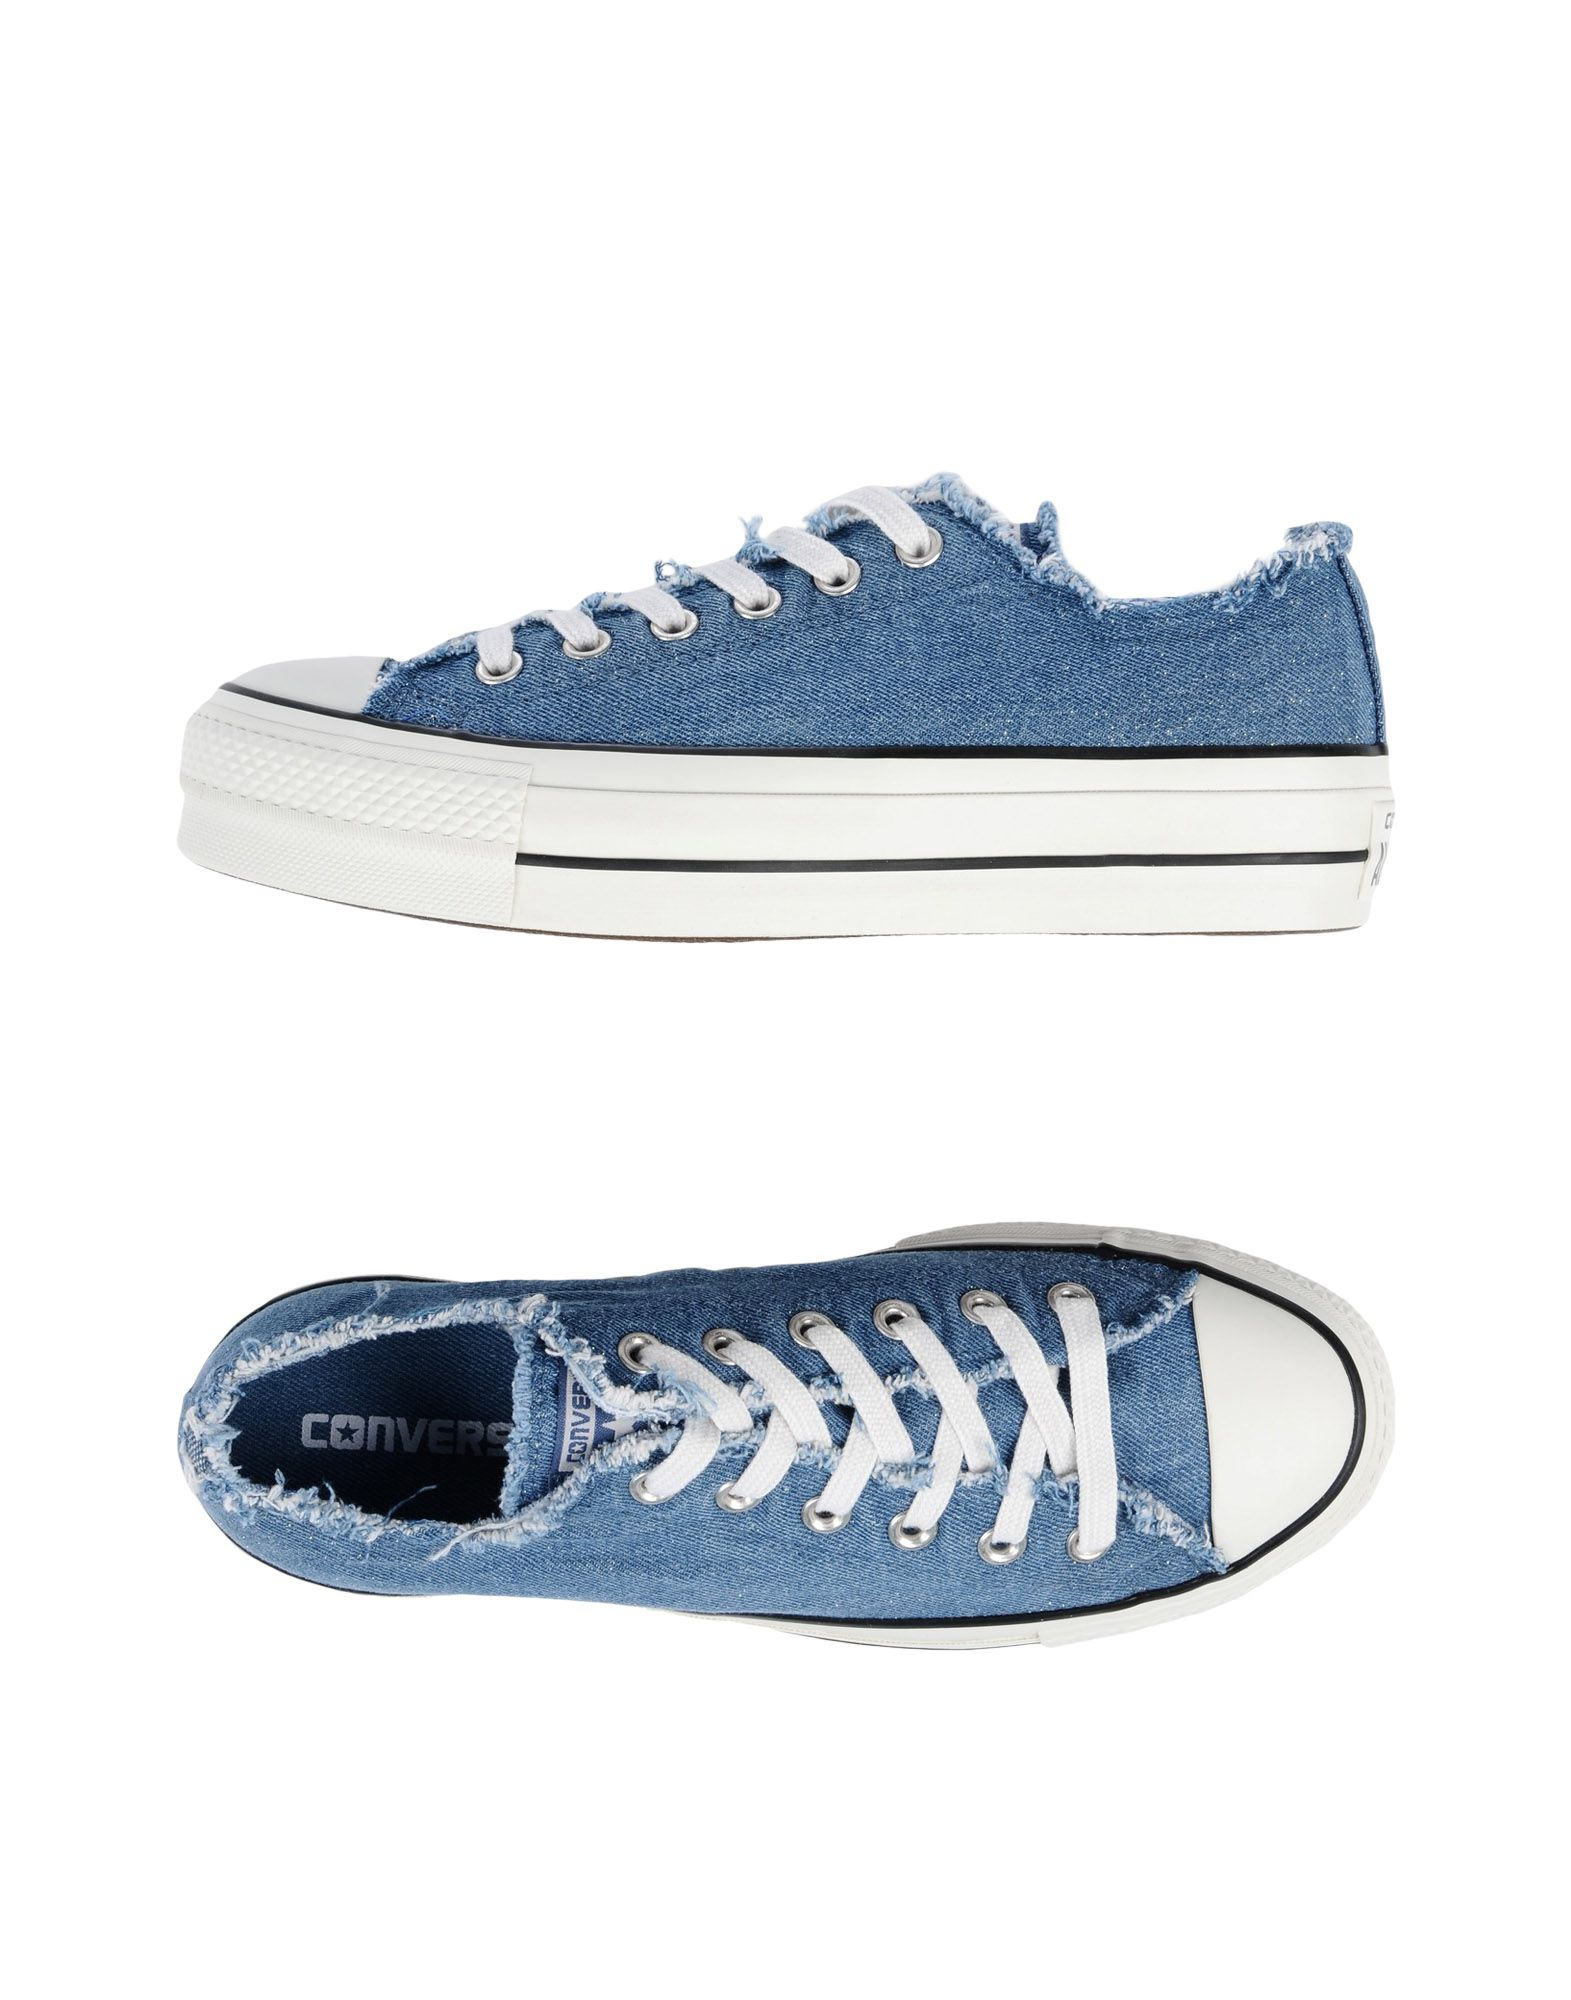 Zapatillas Converse All Star Ctas Ctas Ctas Ox Clean Lift Dim Frayed - Mujer - Zapatillas Converse All Star 47075c